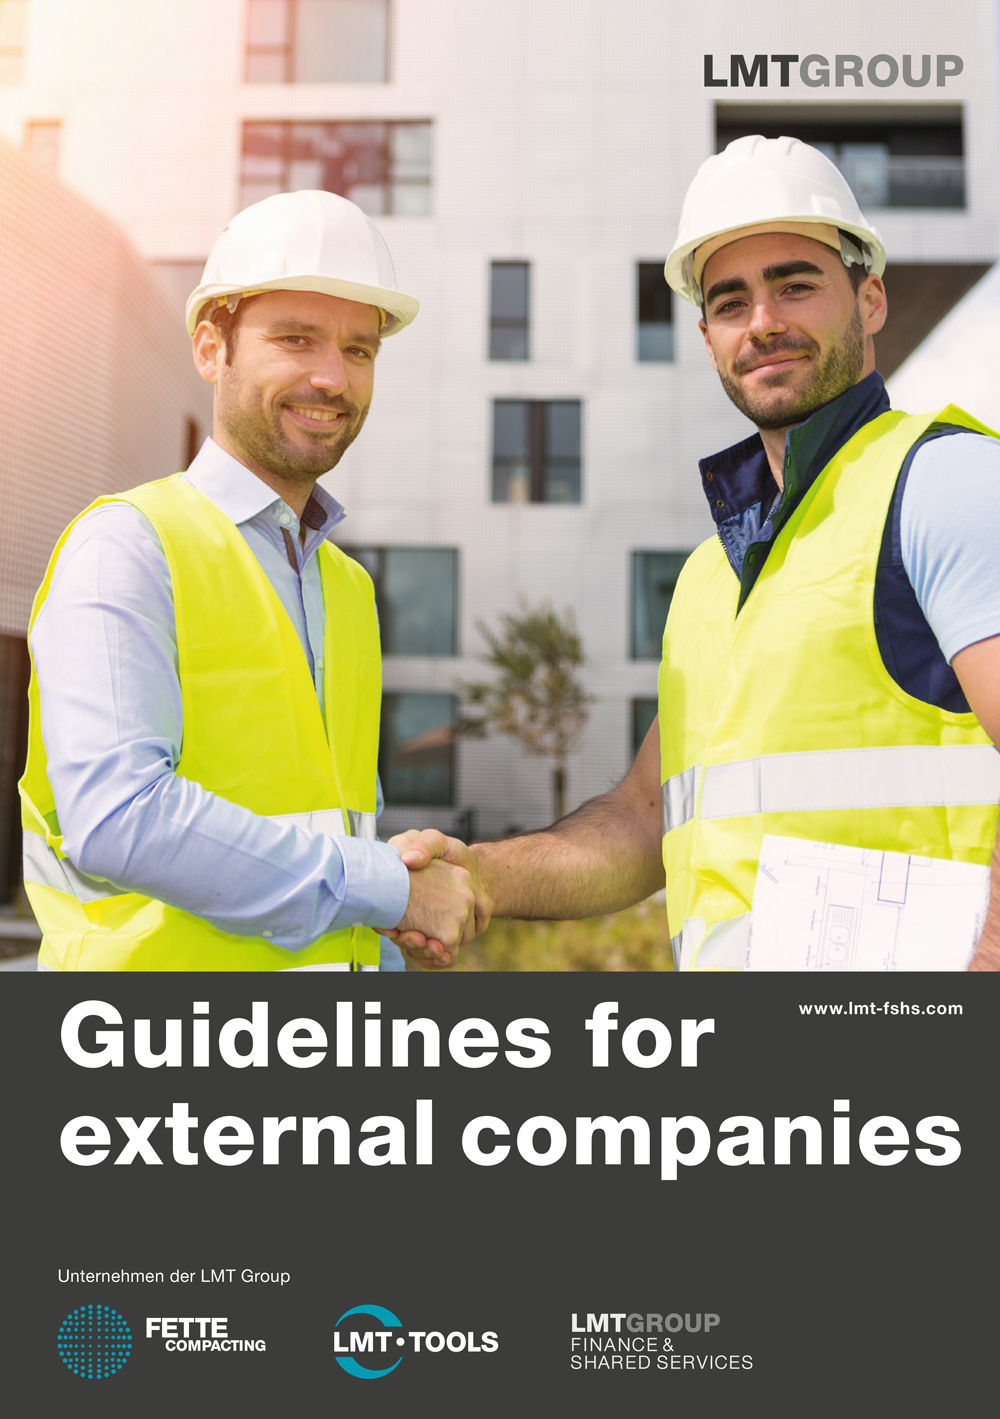 Guidelines for external companies